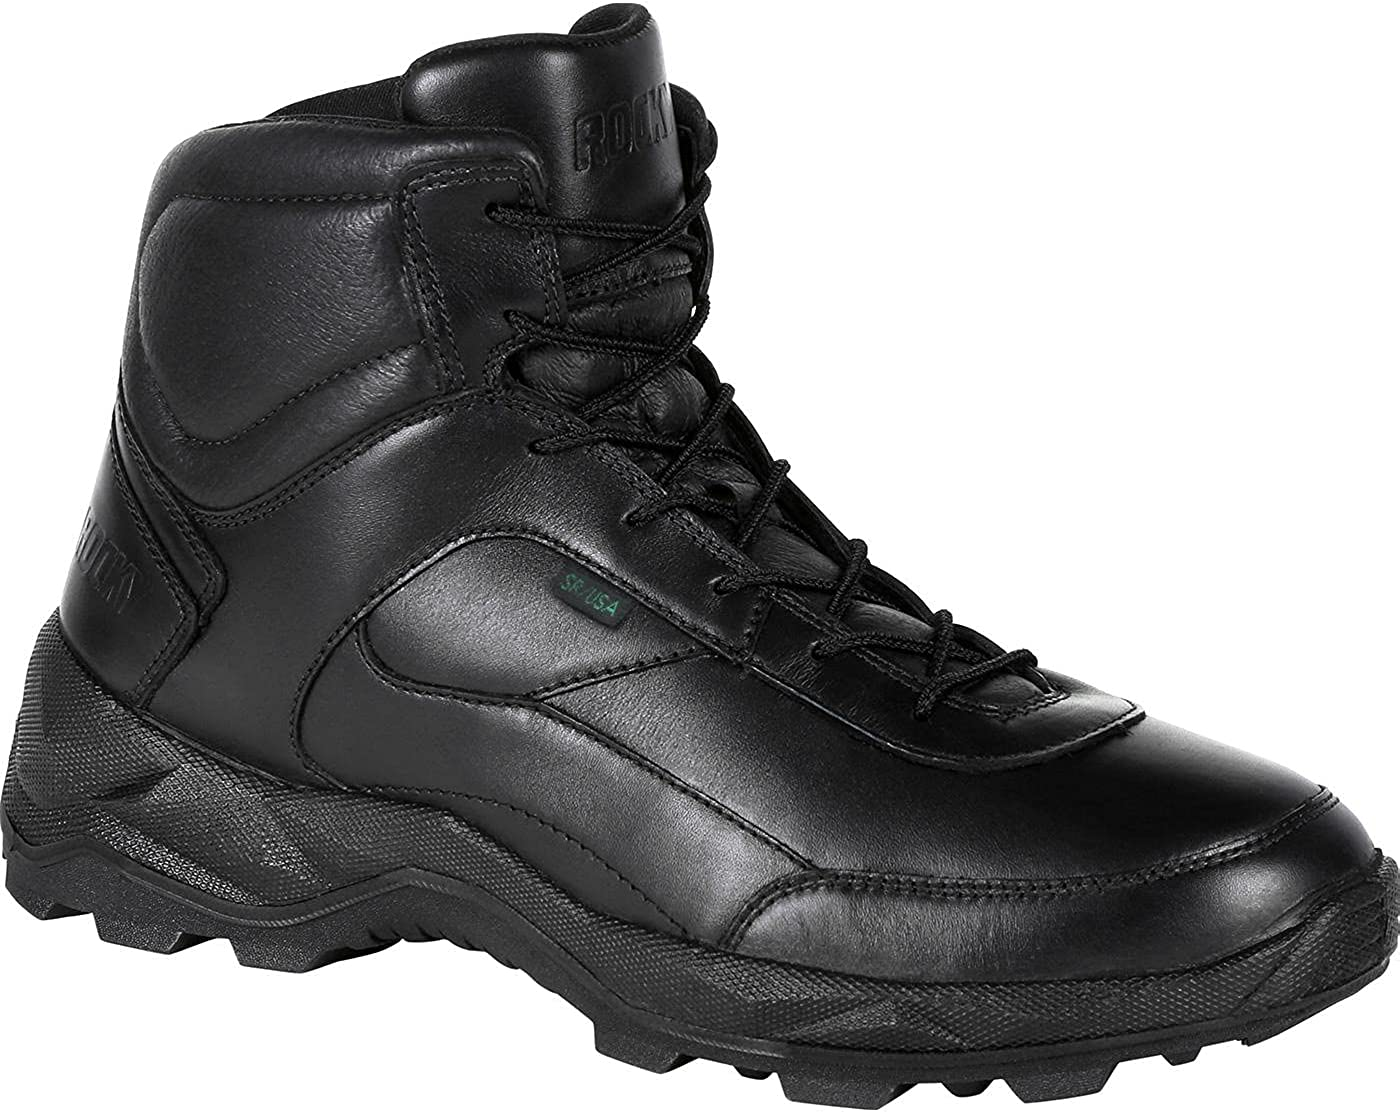 Super beauty product restock quality top Rocky Priority Max 88% OFF Postal-Approved Boot Duty